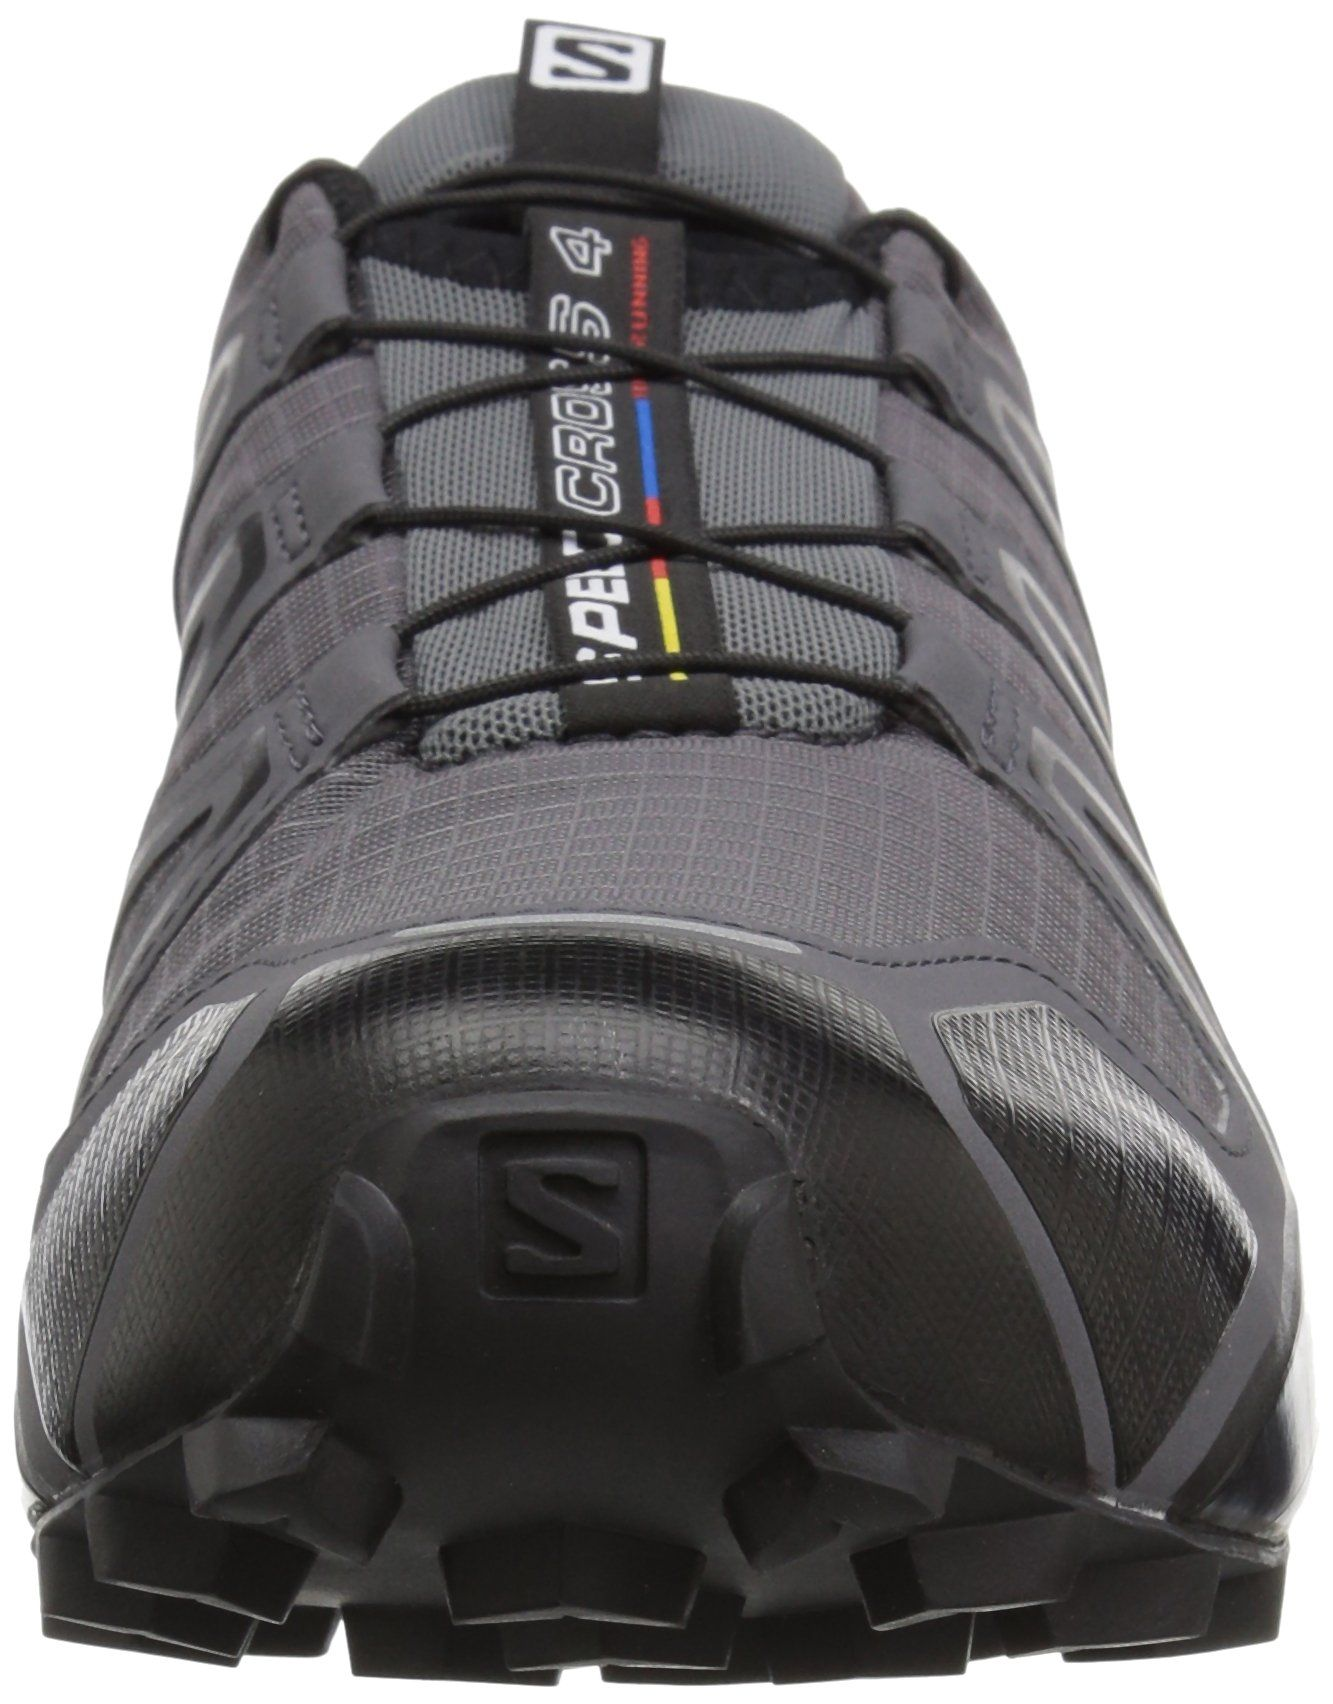 Salomon Mens Speedcross 4 Trail Running Shoe Dark Cloud 8 Wide US     Details can be found by clicking on the image. (This is an affiliate link) 438ab4e93f3